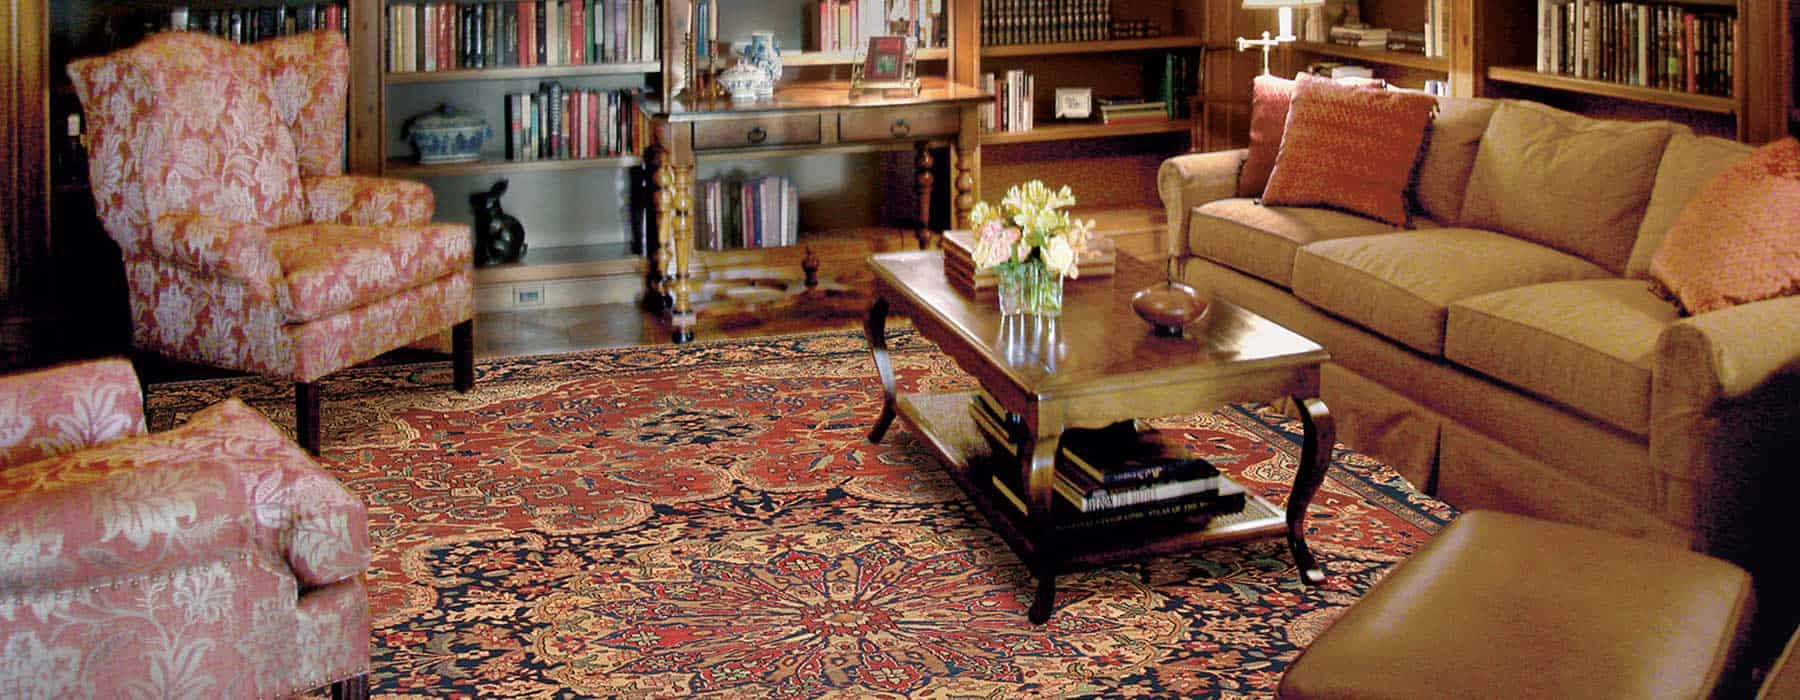 Persian Rug Cleaning Pettyjohn S Rug Cleaning